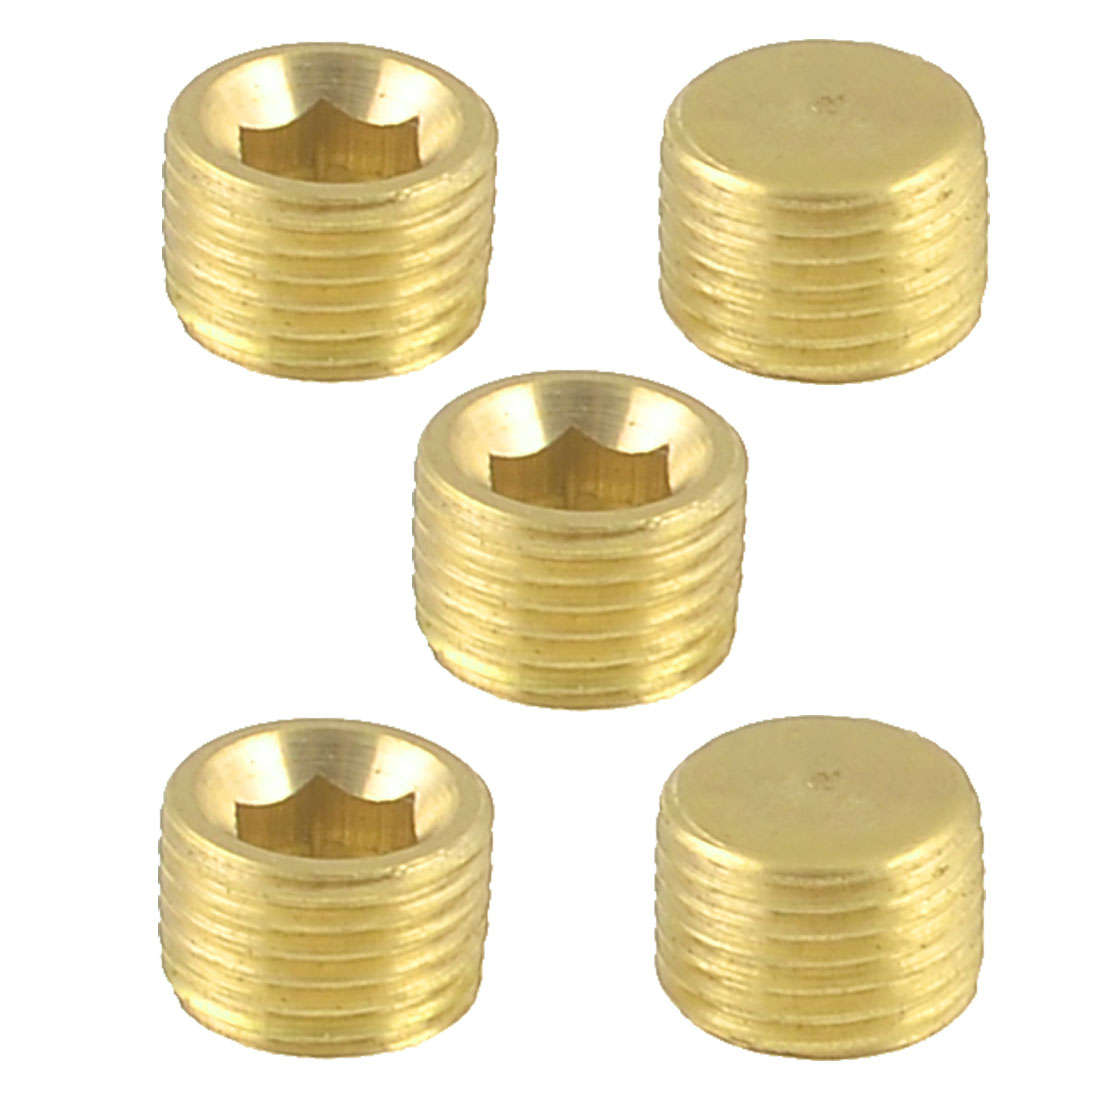 Unique Bargains 5 Pcs Air Pipe Fittings 9mm Thread Hex Socket Metal Plugs Caps Gold Tone